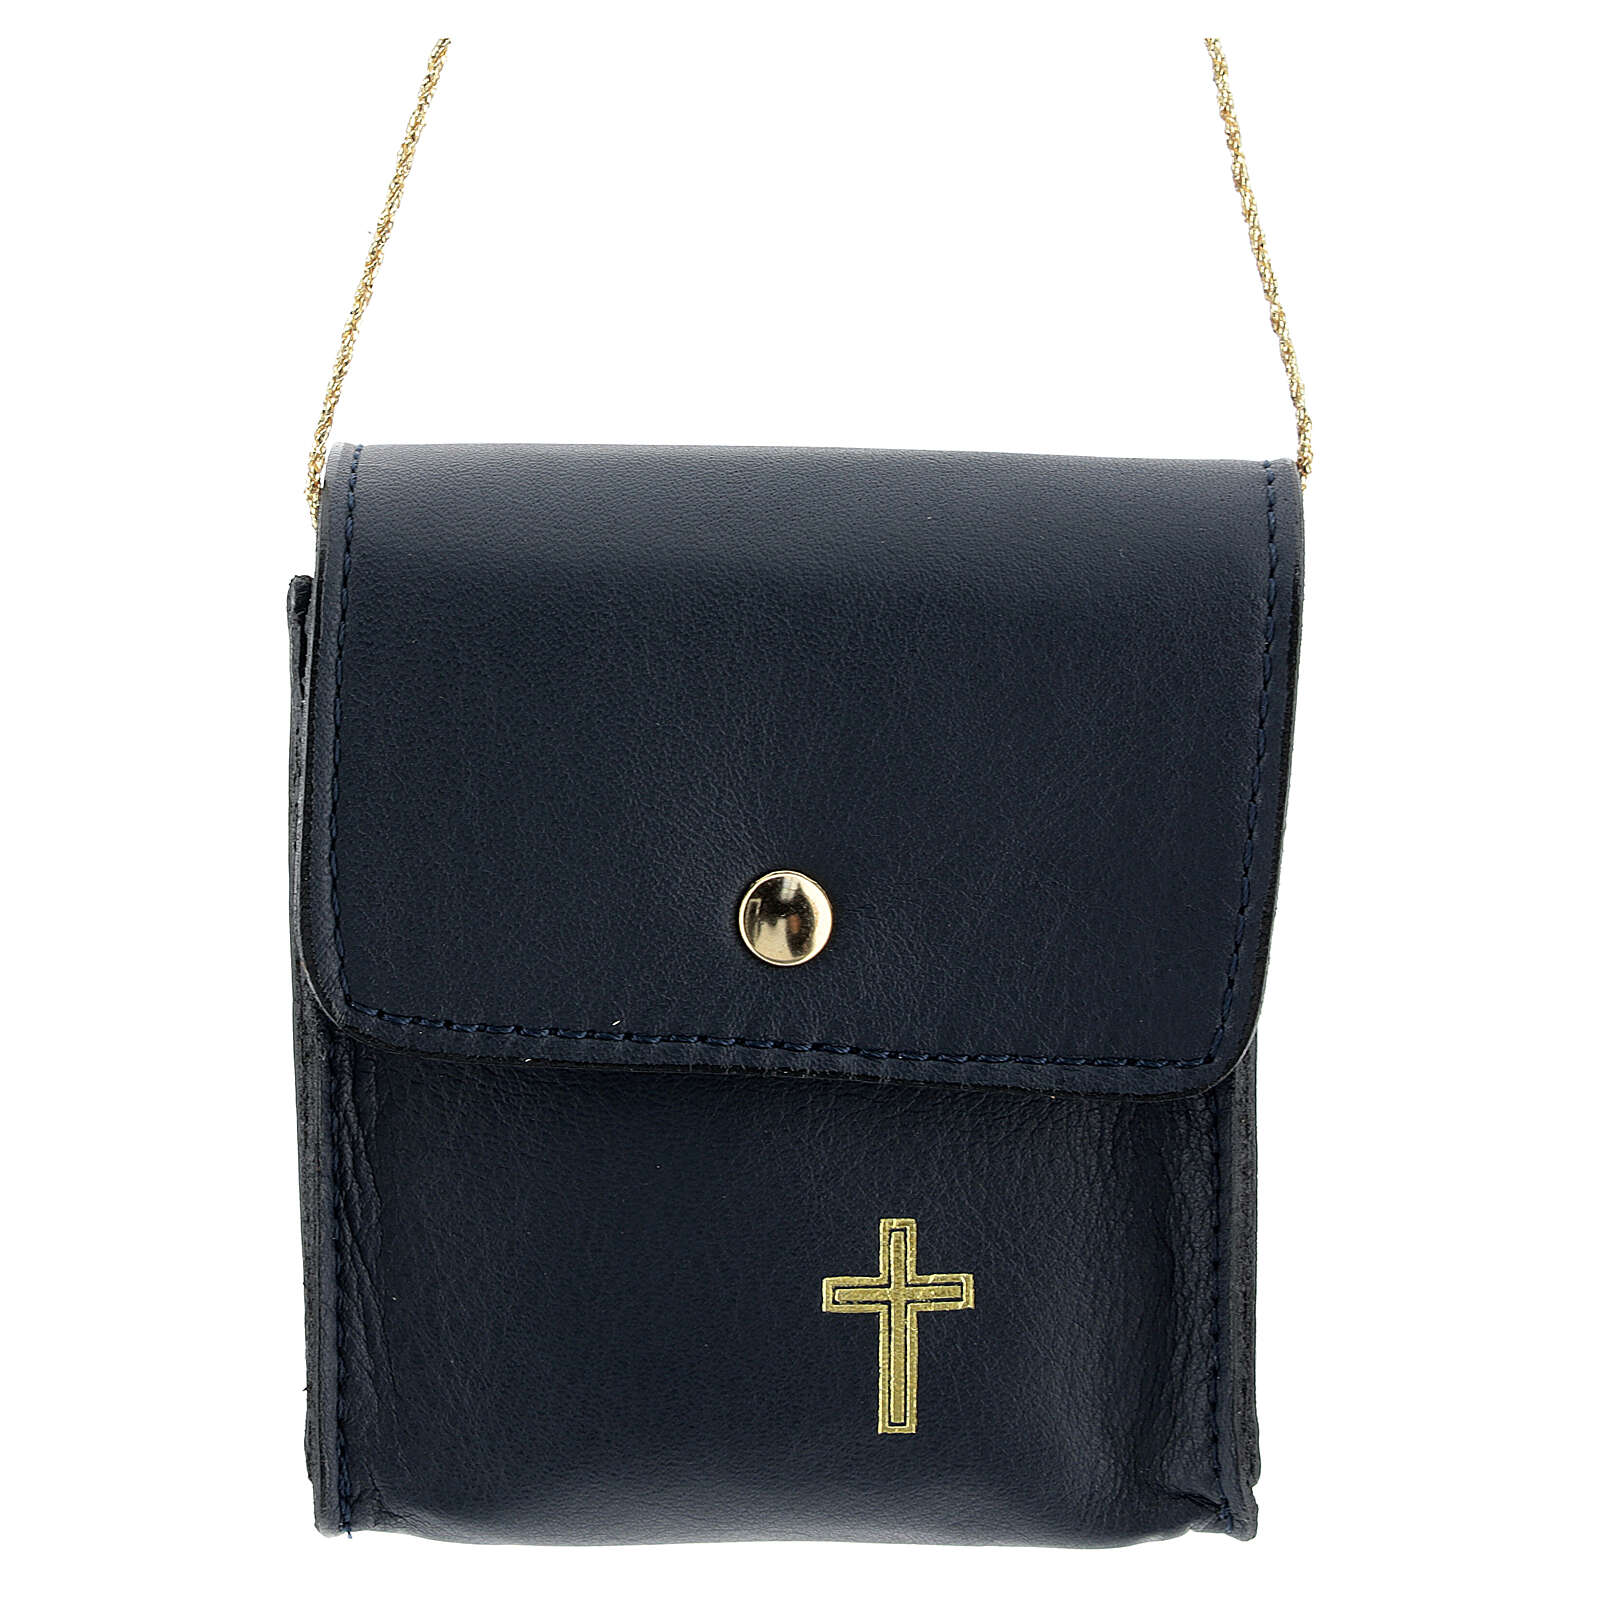 Paten burse 3 1/2x3 1/2 in of real blue leather 4